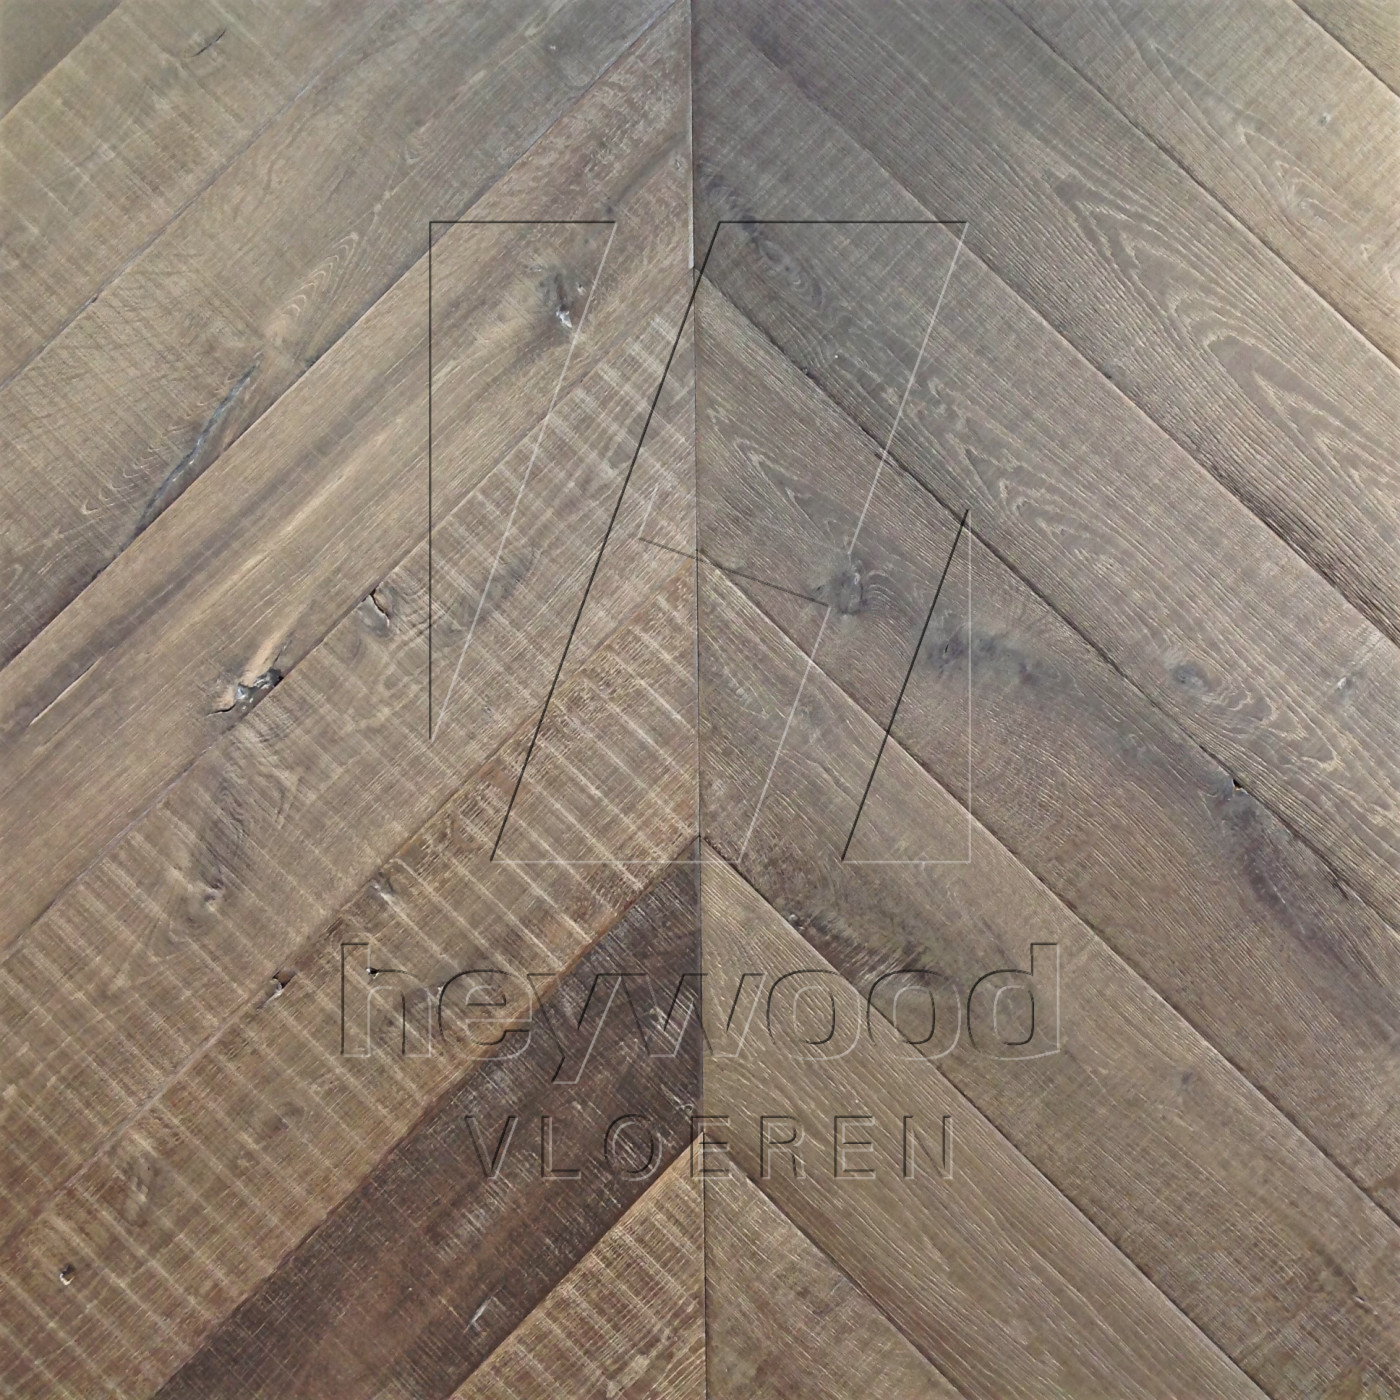 Knotting Hill Chevron 'FIORDLAND' (special order only) in Chevron of Pattern & Panel Floors